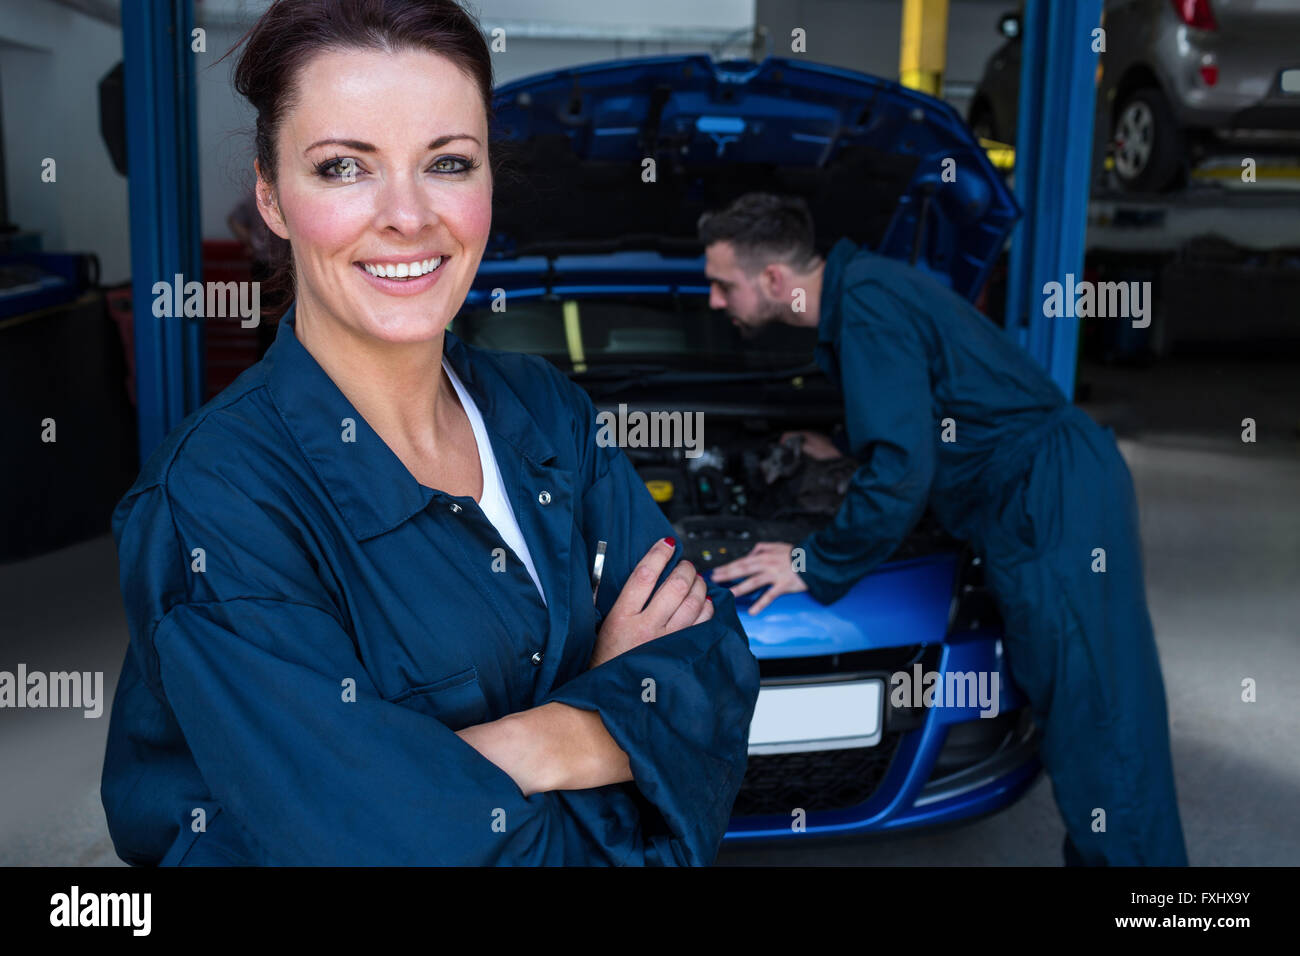 Female mechanic smiling at camera while her colleague examining car engine - Stock Image